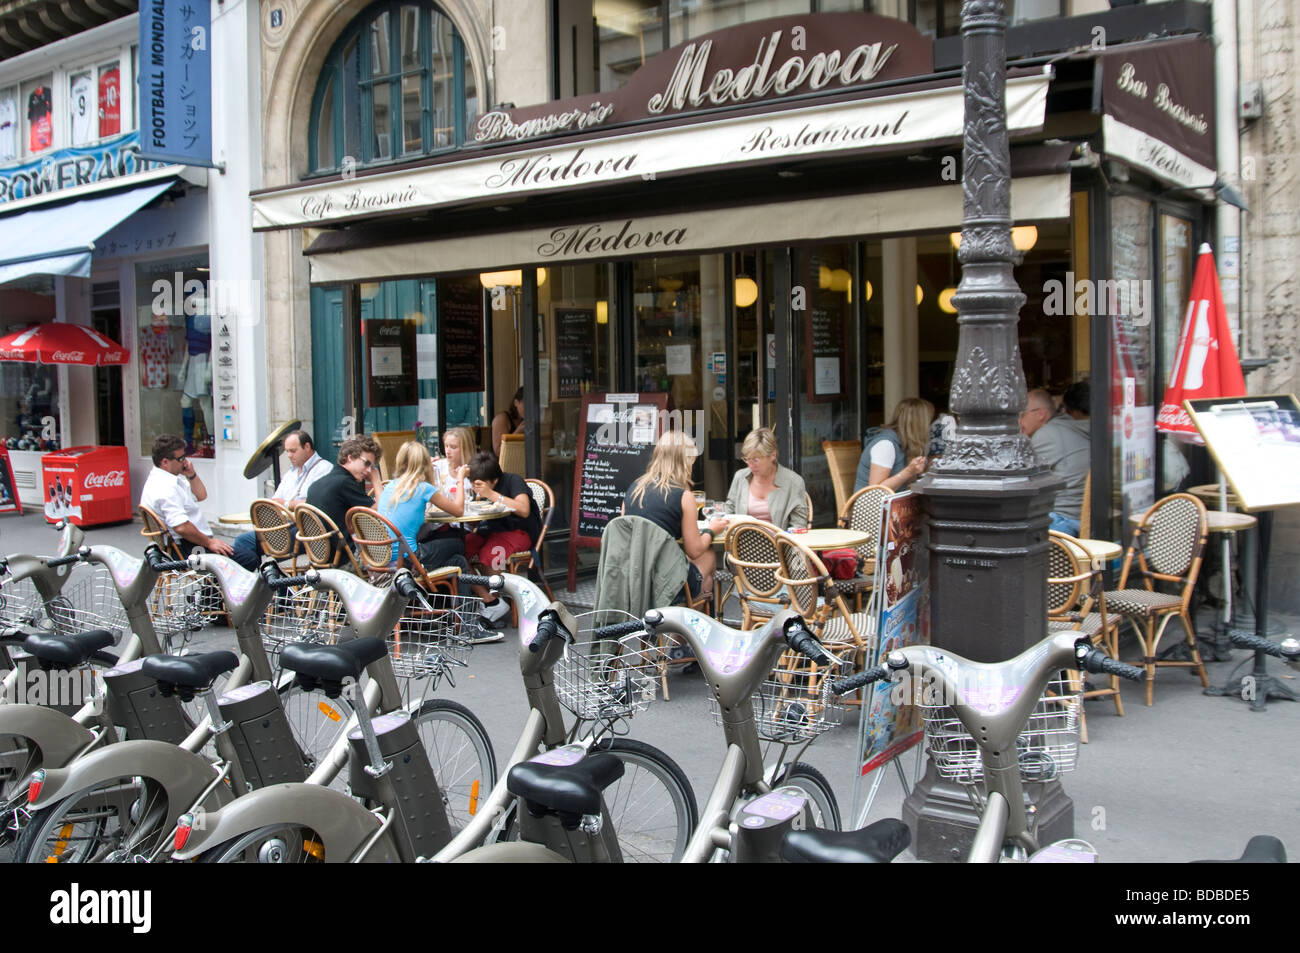 Paris free bicycle rent kiosk in front of Brasserie - Stock Image